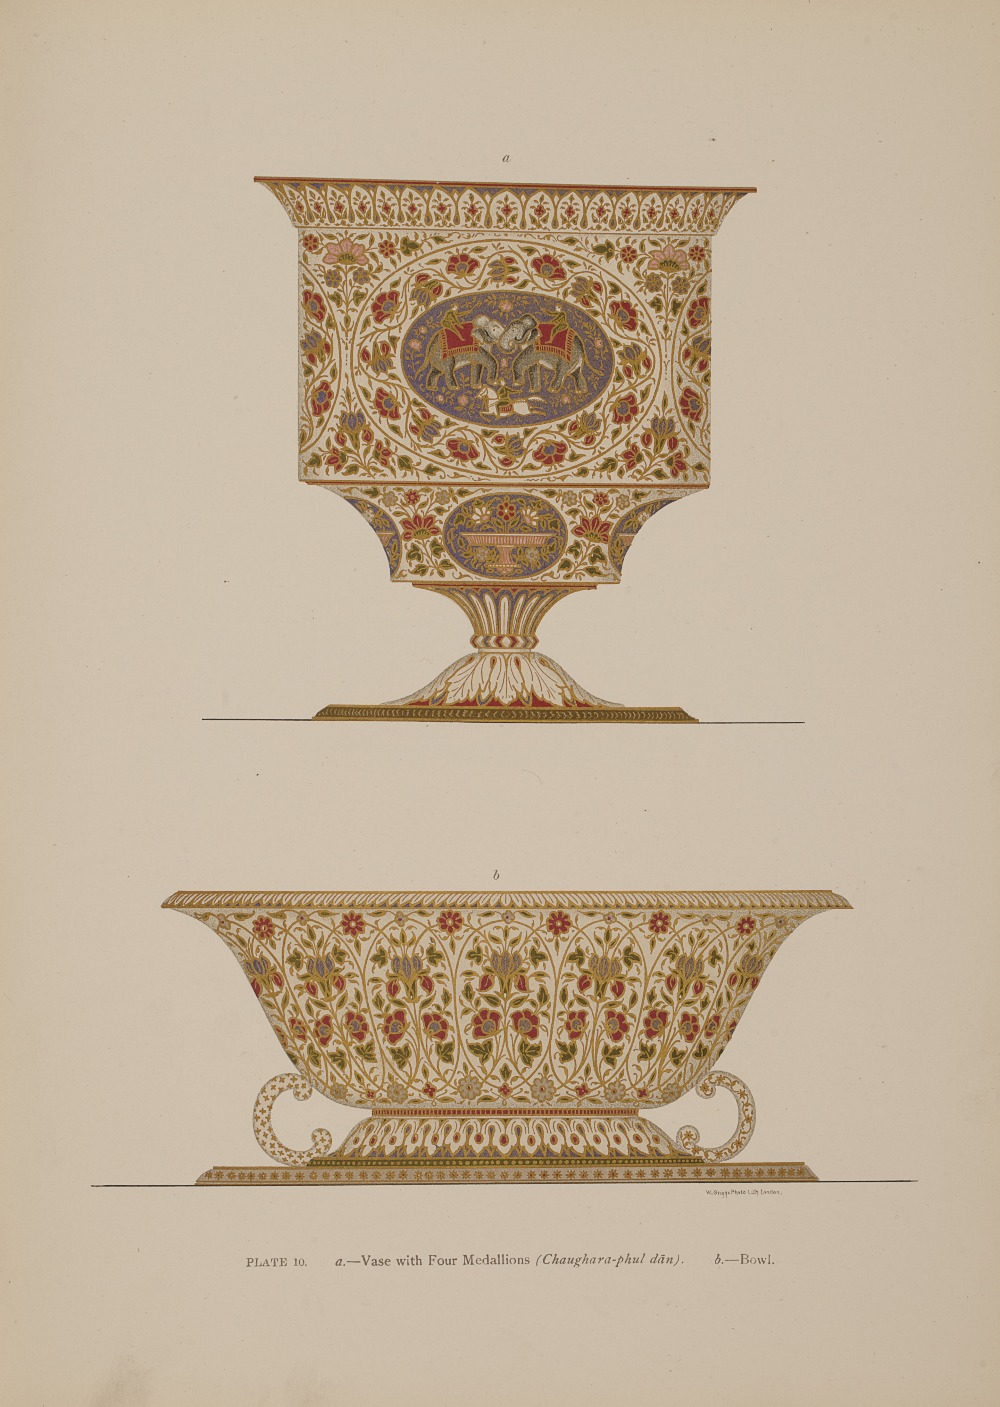 Jacob, S.S. and T.H. Hendley  Jeypore enamels. London: W. Griggs, 1886. Folio, 28 chromolithographed - Image 2 of 7